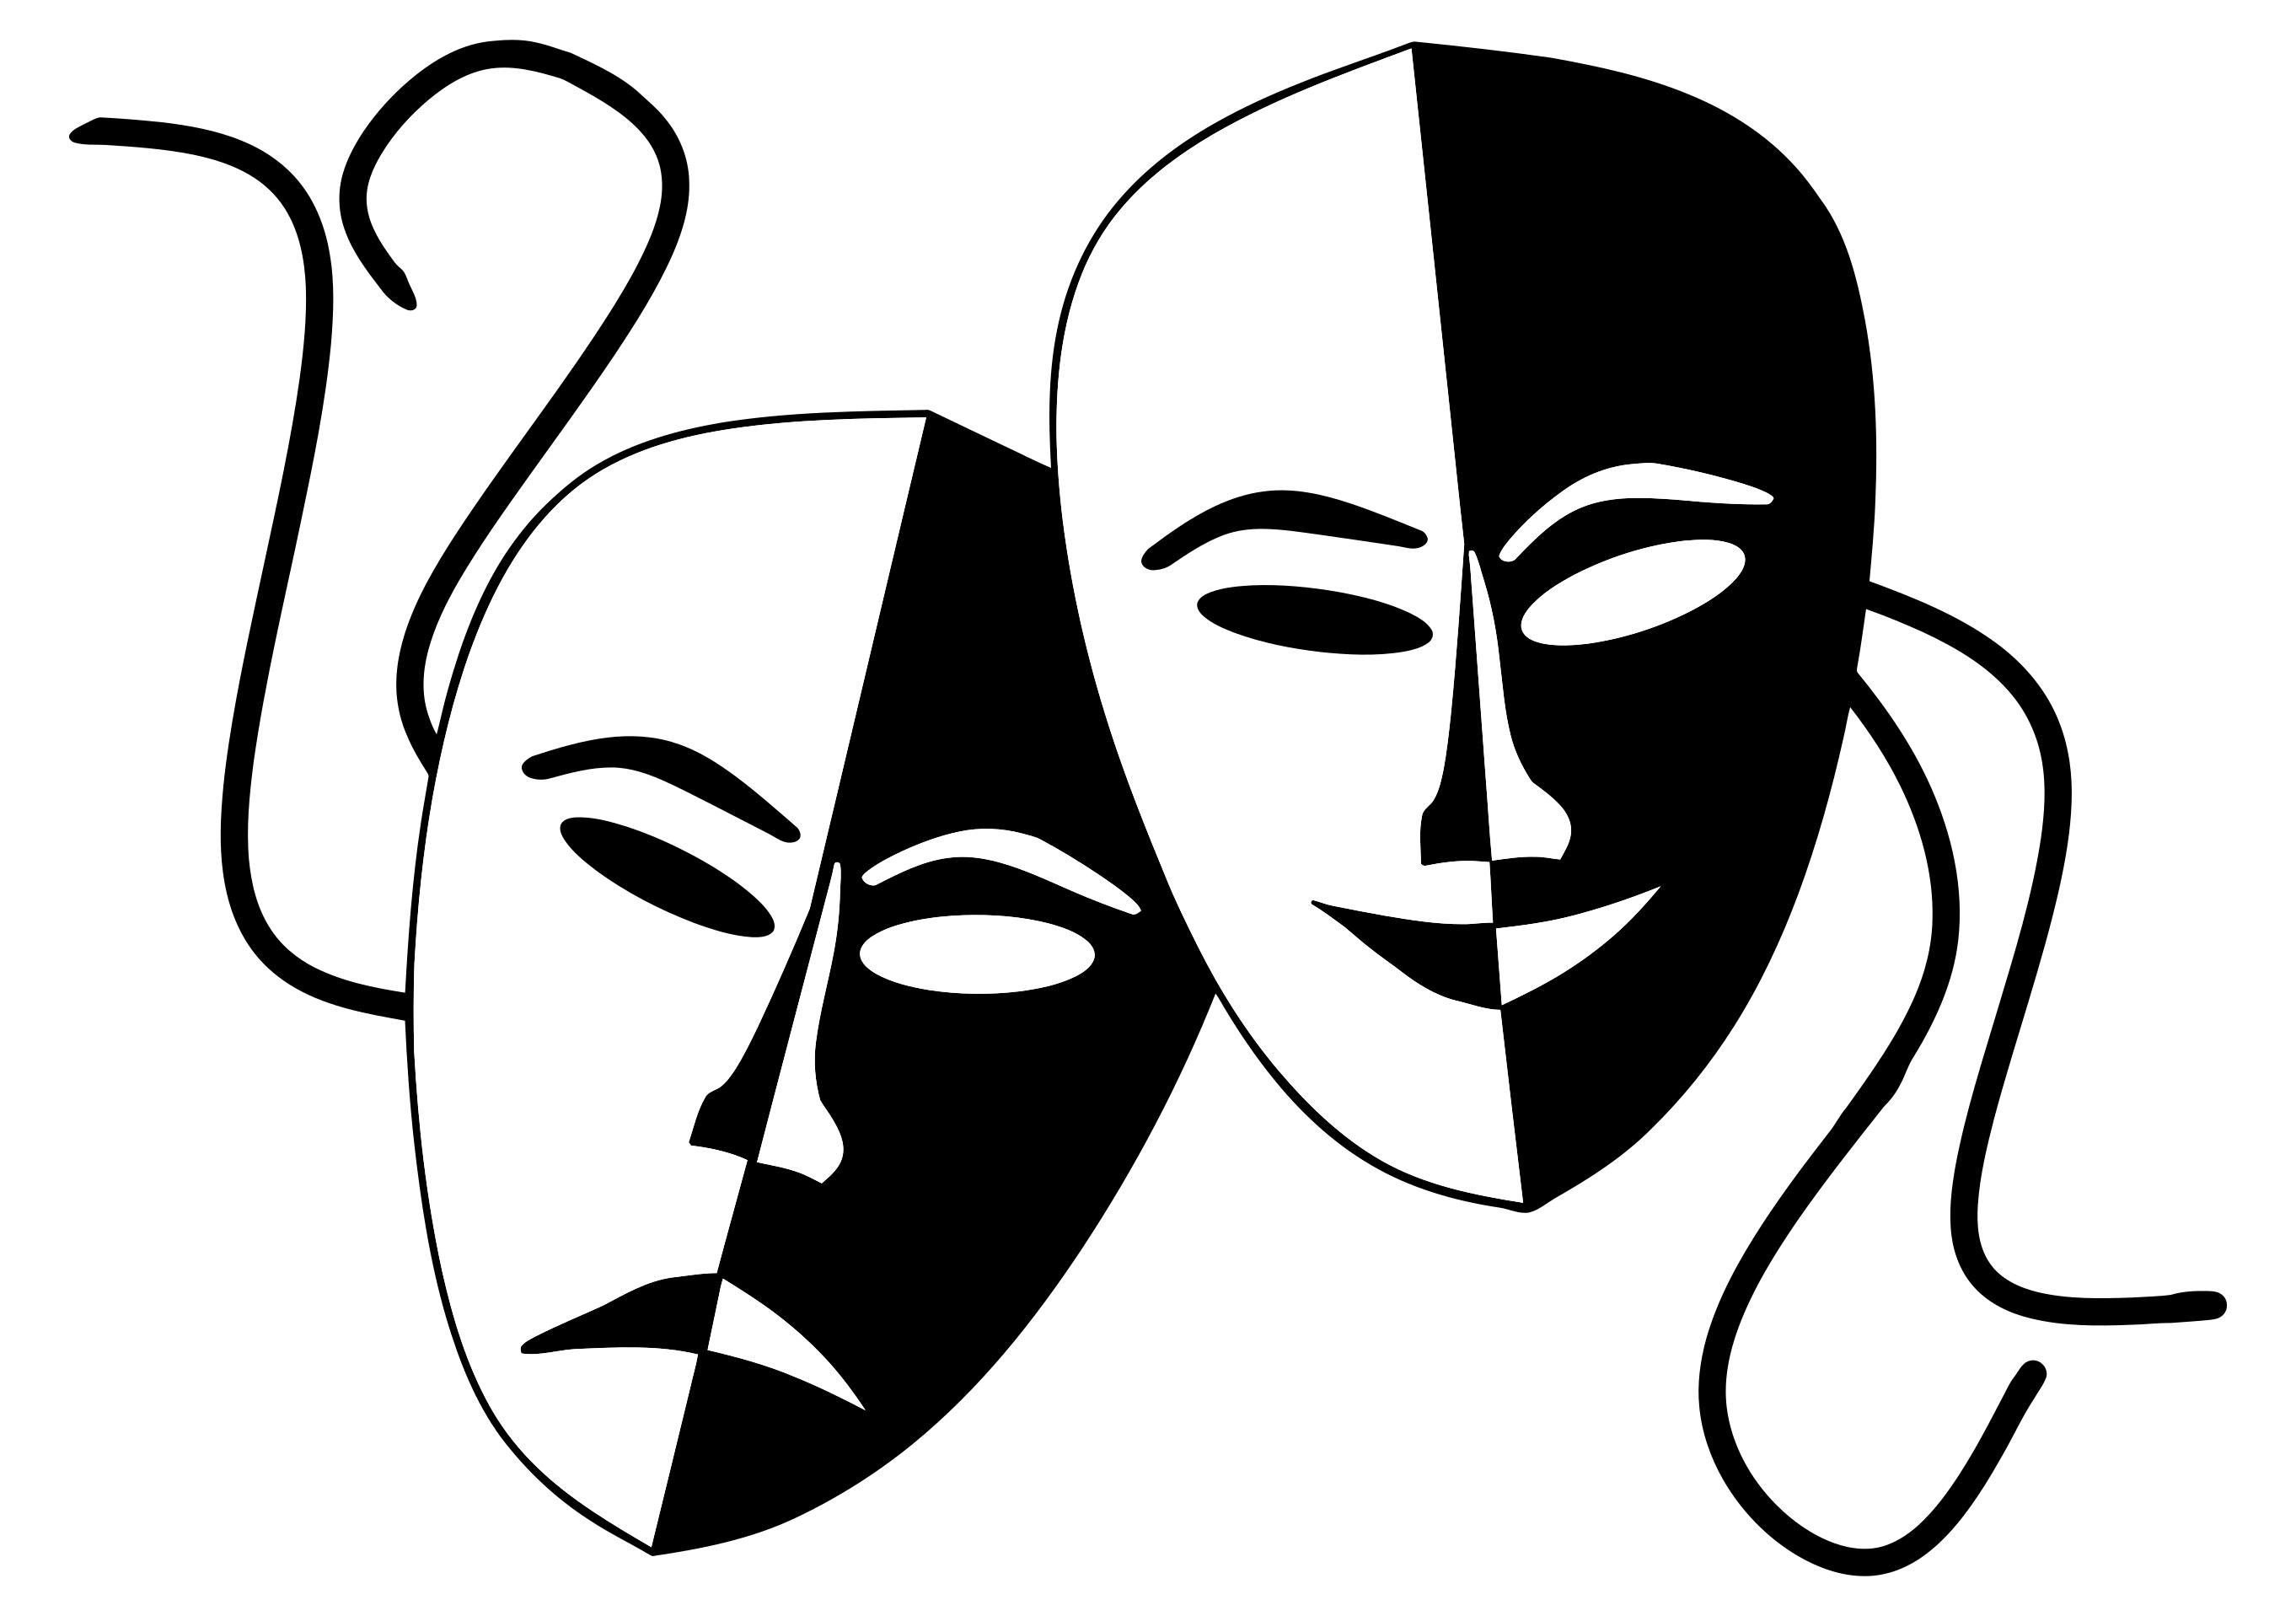 drama masks silhouette at getdrawings com free for personal use rh getdrawings com